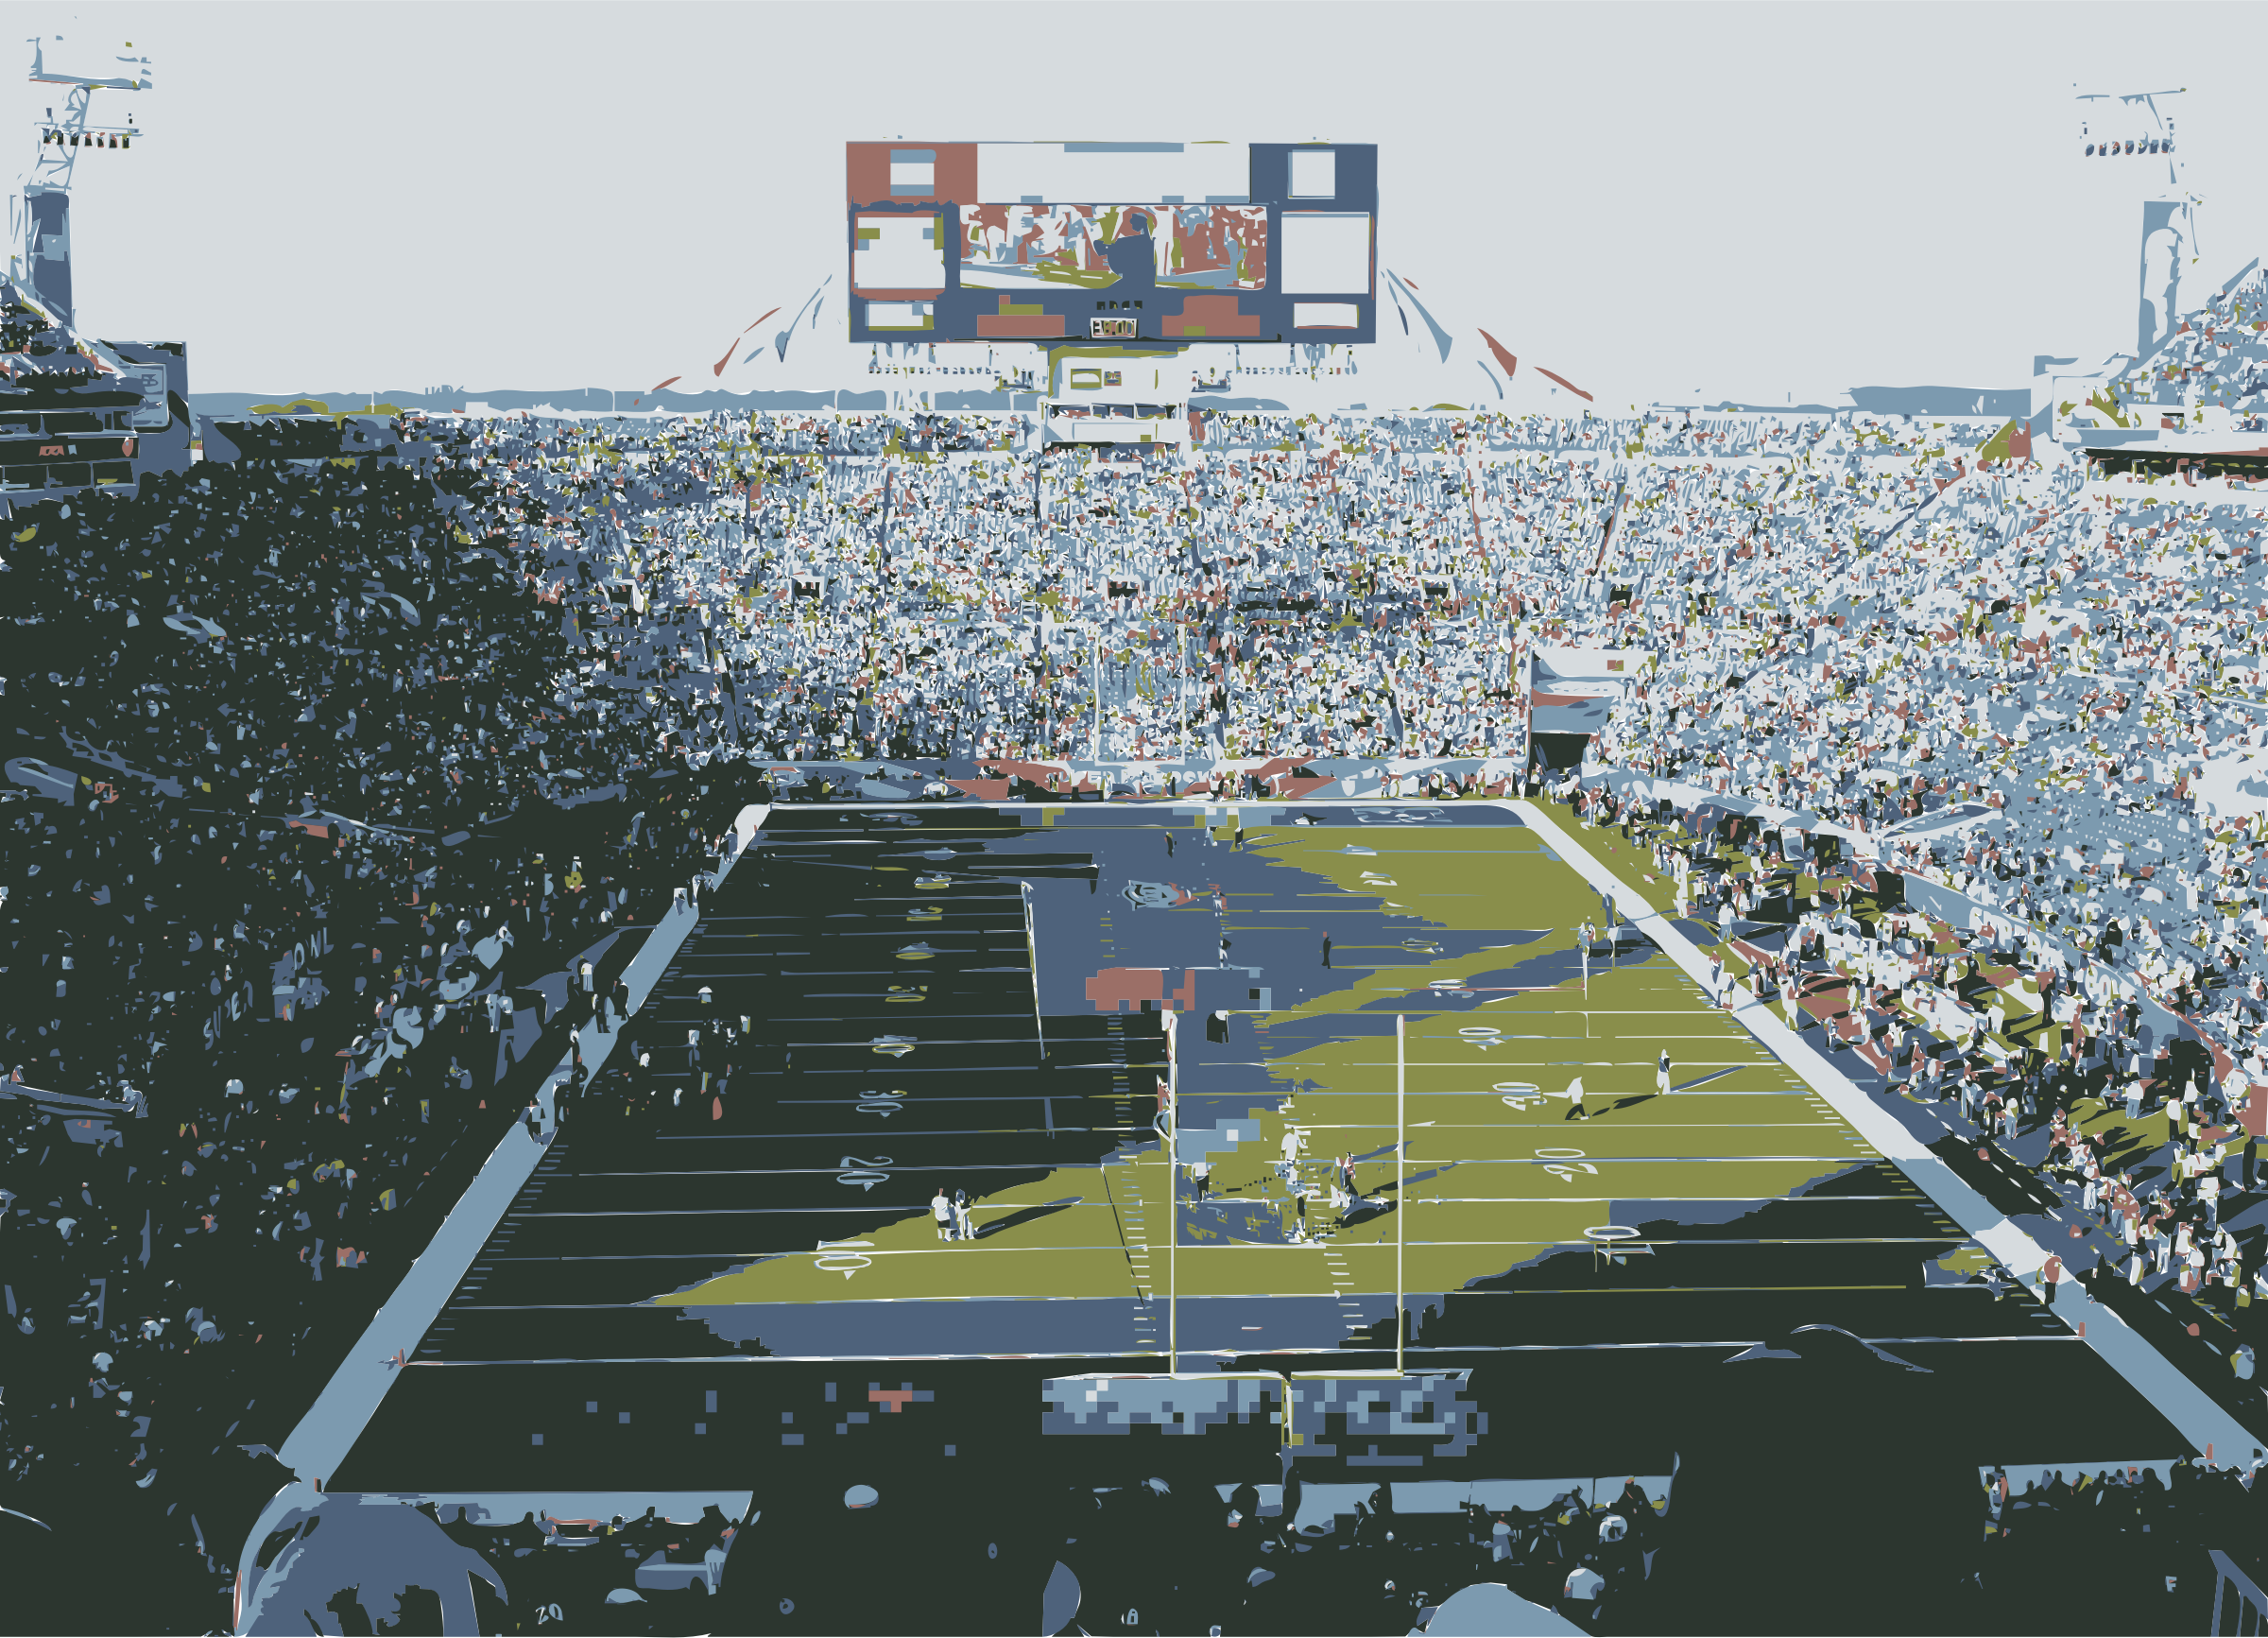 Superbowl Football Stadium Color by jonphillips